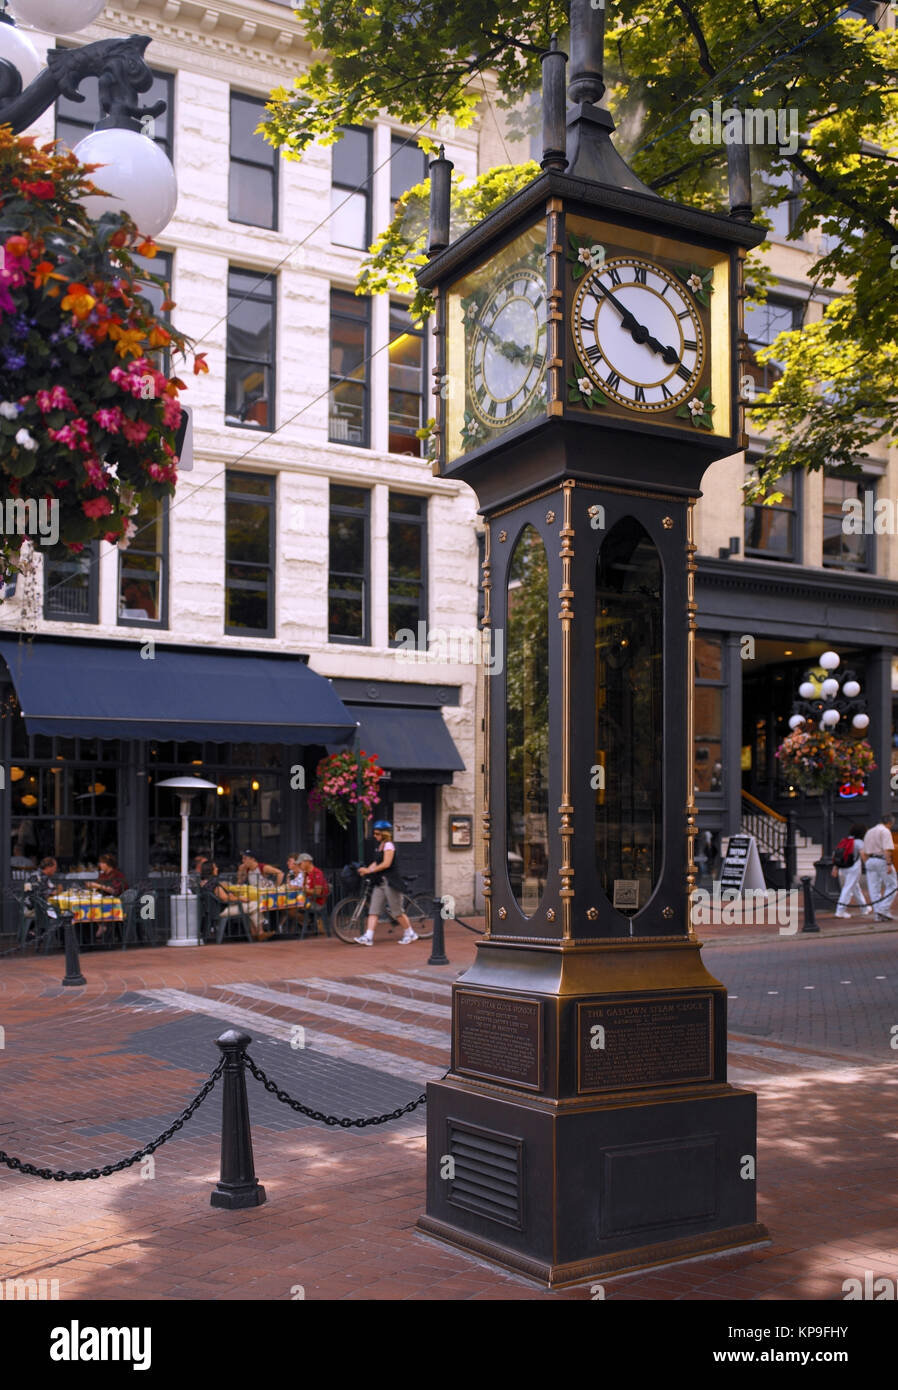 The Steam Clock in Vancouver in British Columbia, Canada. Built in 1977 and located at the corner of Cambie Street - Stock Image